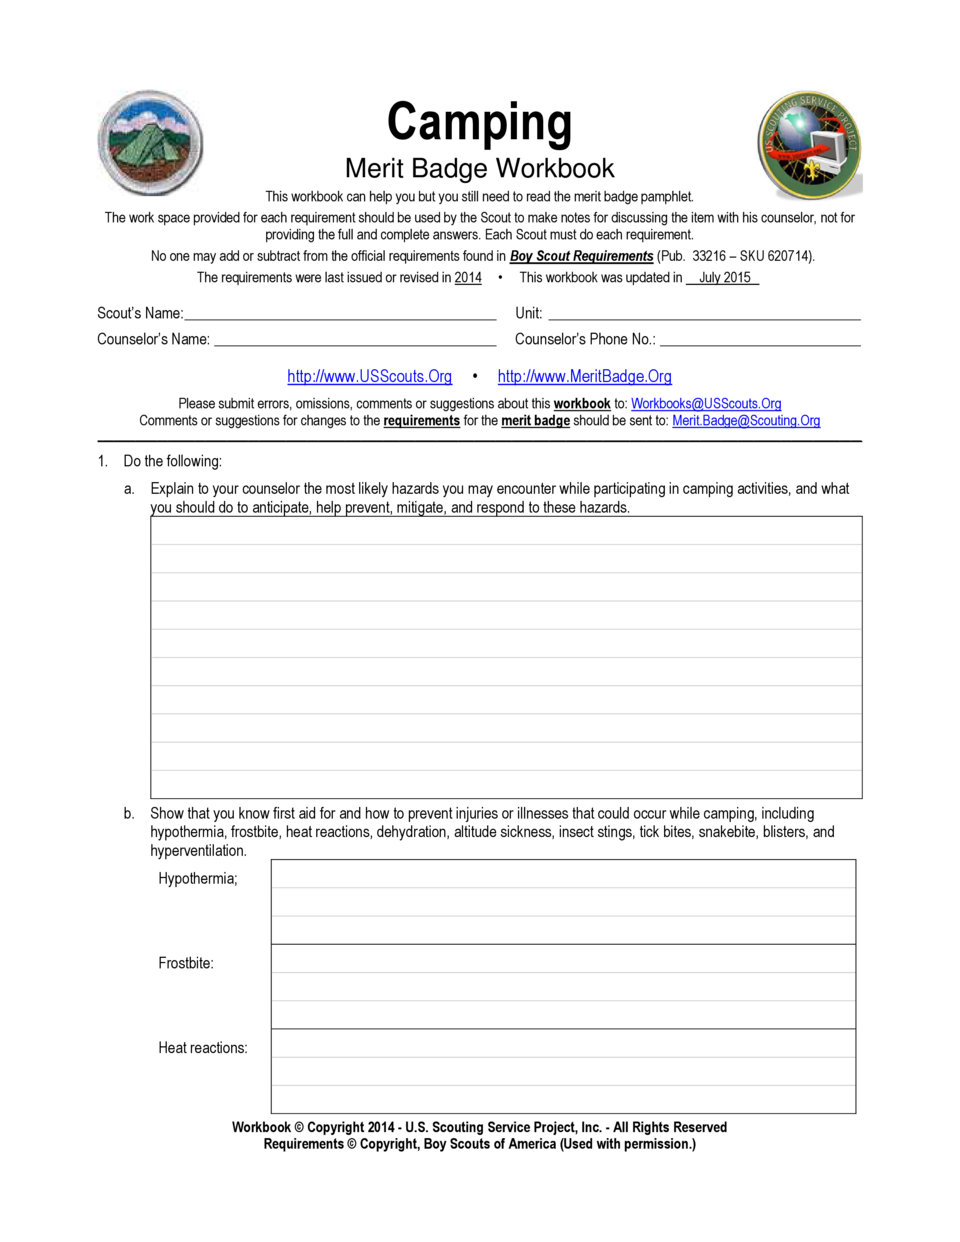 Worksheets Hiking Merit Badge Worksheet Answers camping merit badge simplebooklet com workbook this can help you but still need to read the